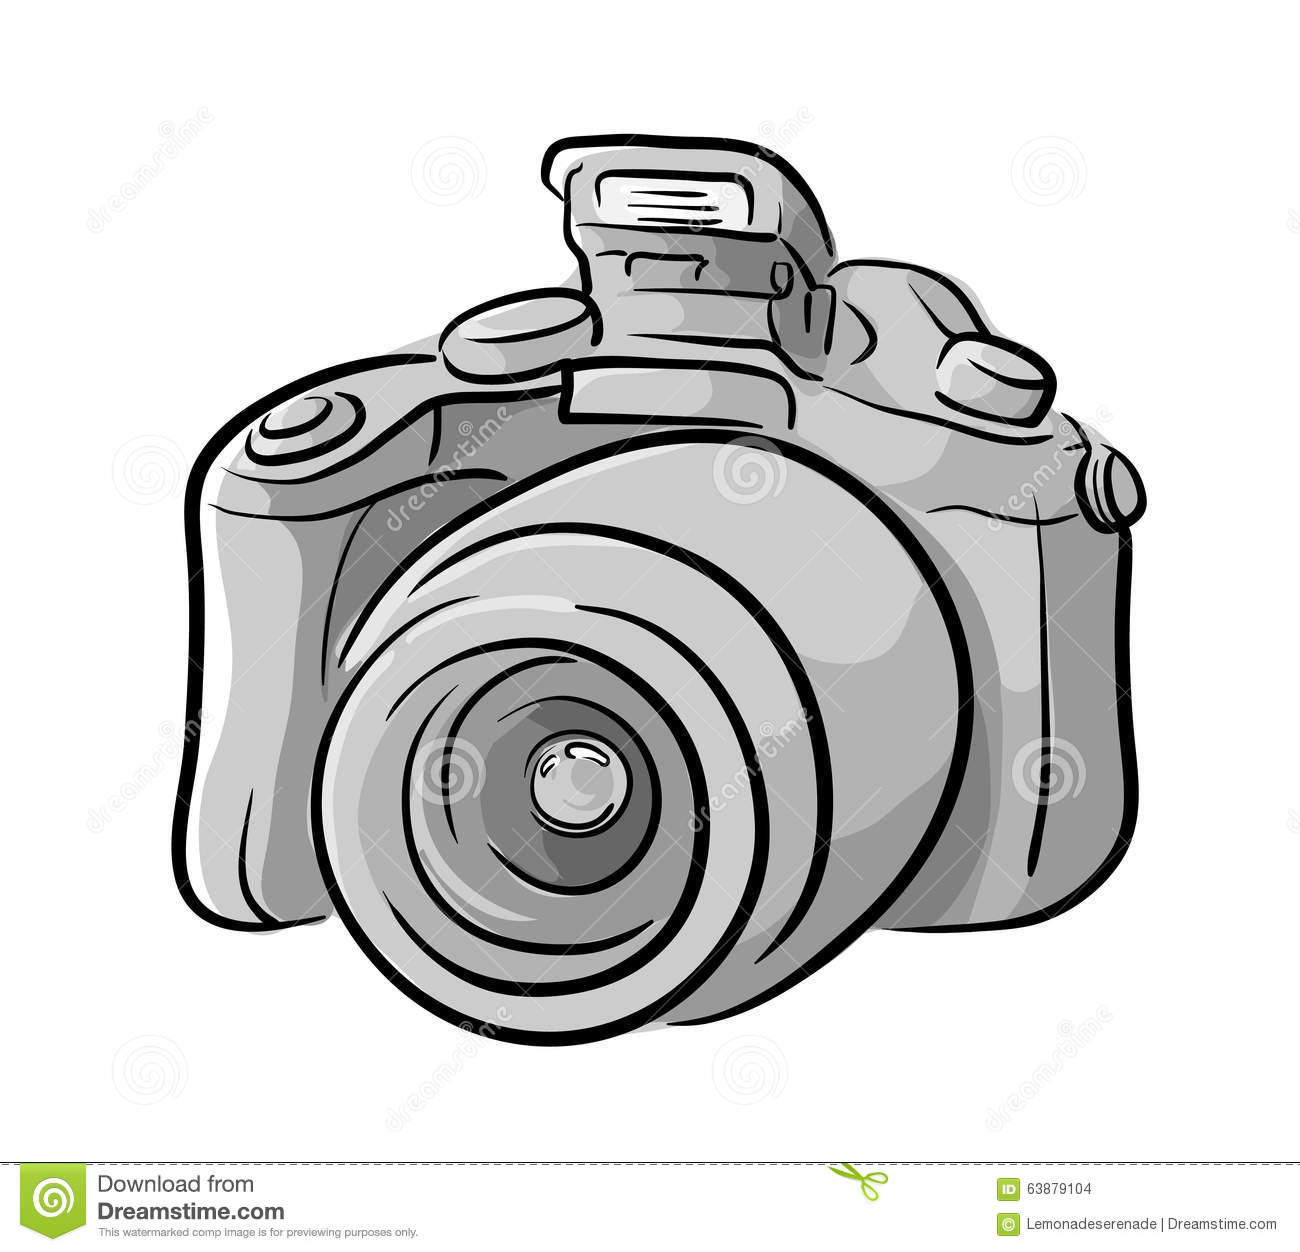 Camera Dslr Camera Logo dslr camera logo photography best digital slr reviews perfect for company or projects